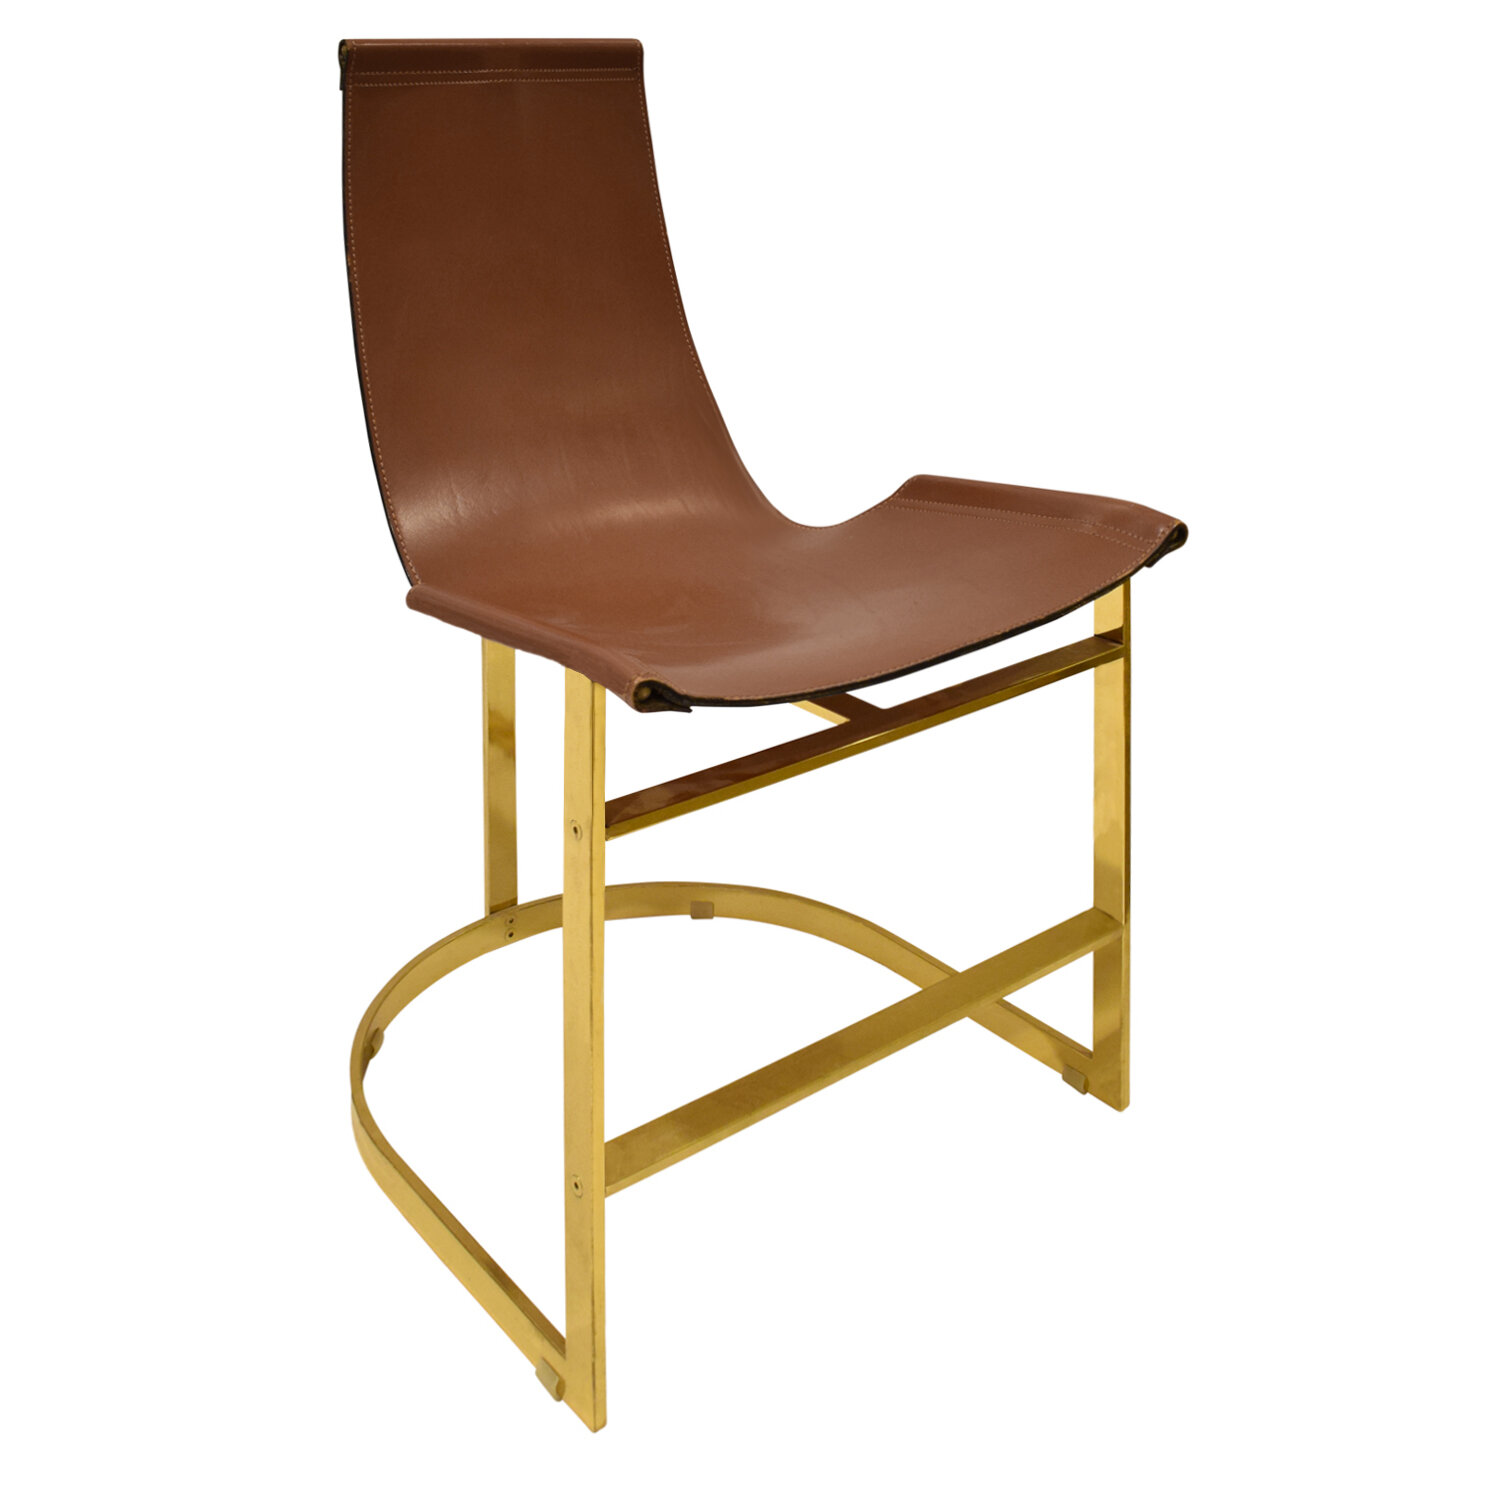 70s 75 brass with leather sling dinningchairs197 angl.jpg